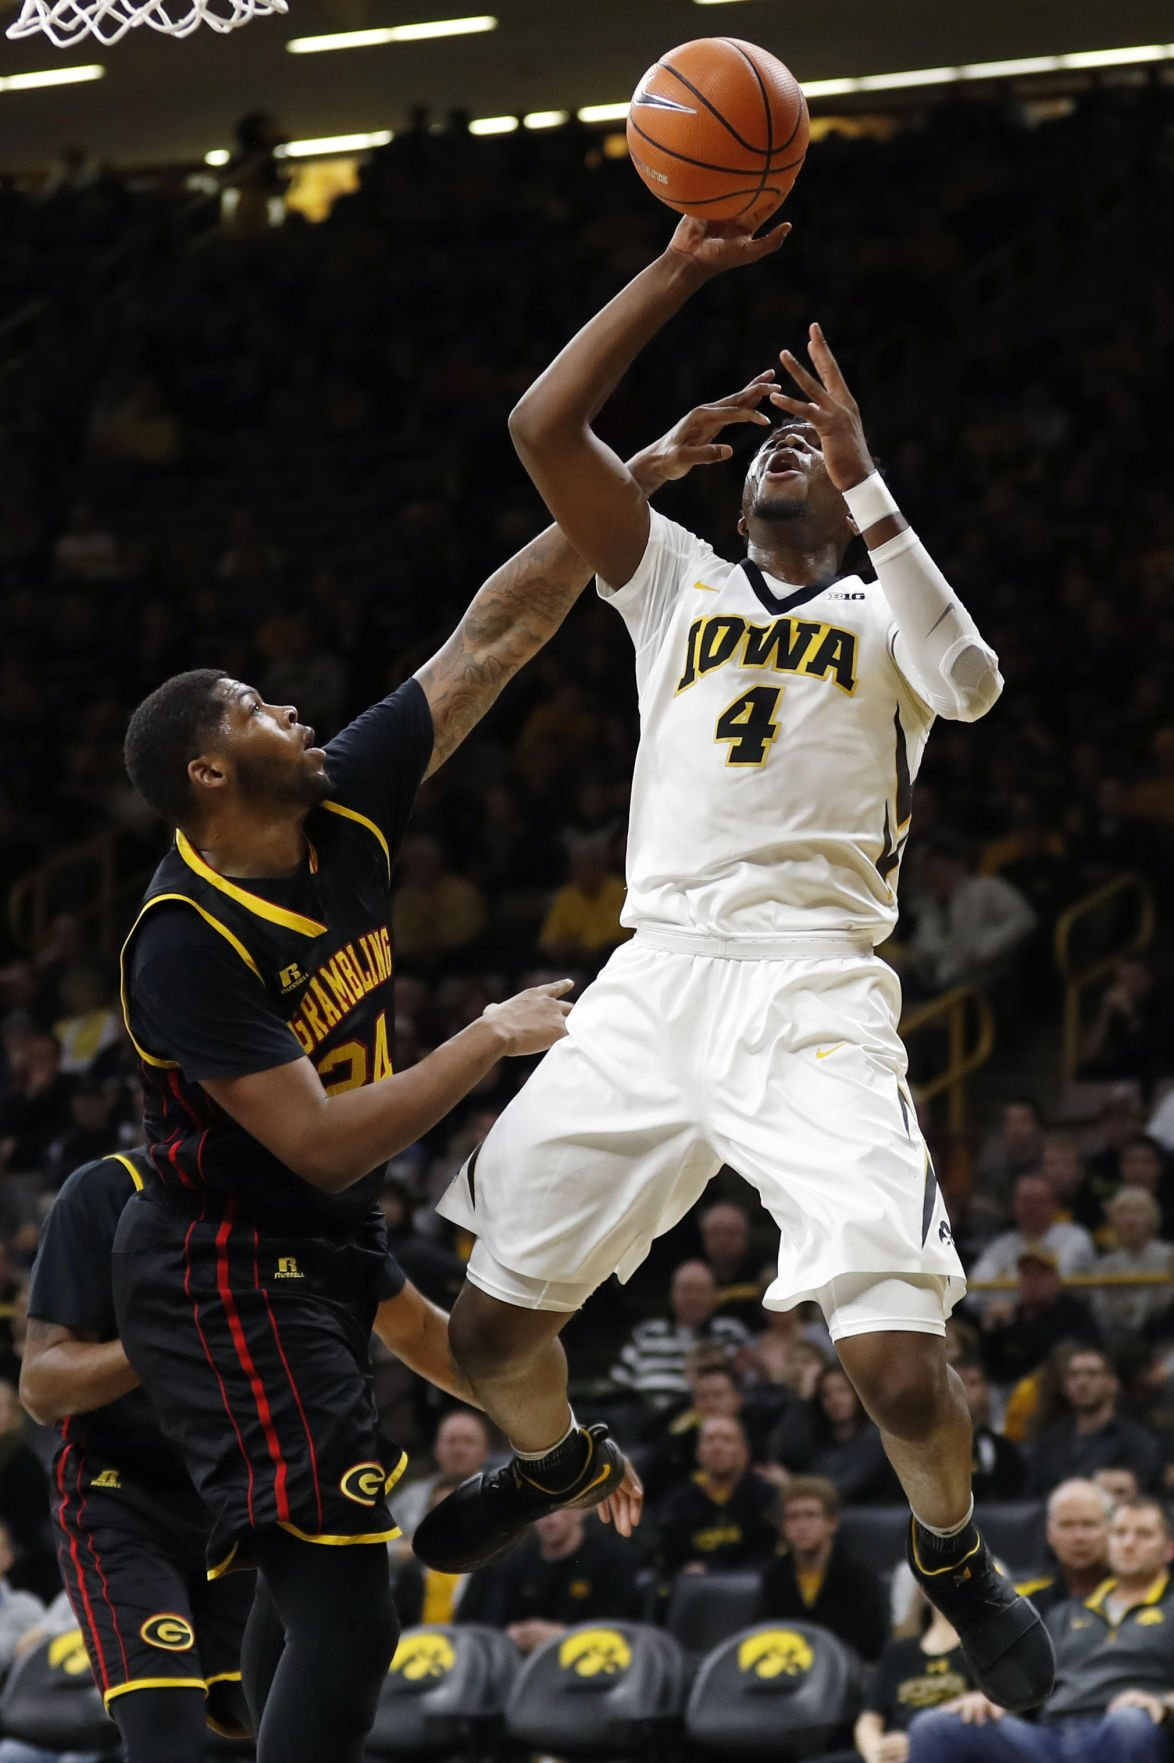 Grambling St Iowa Basketball